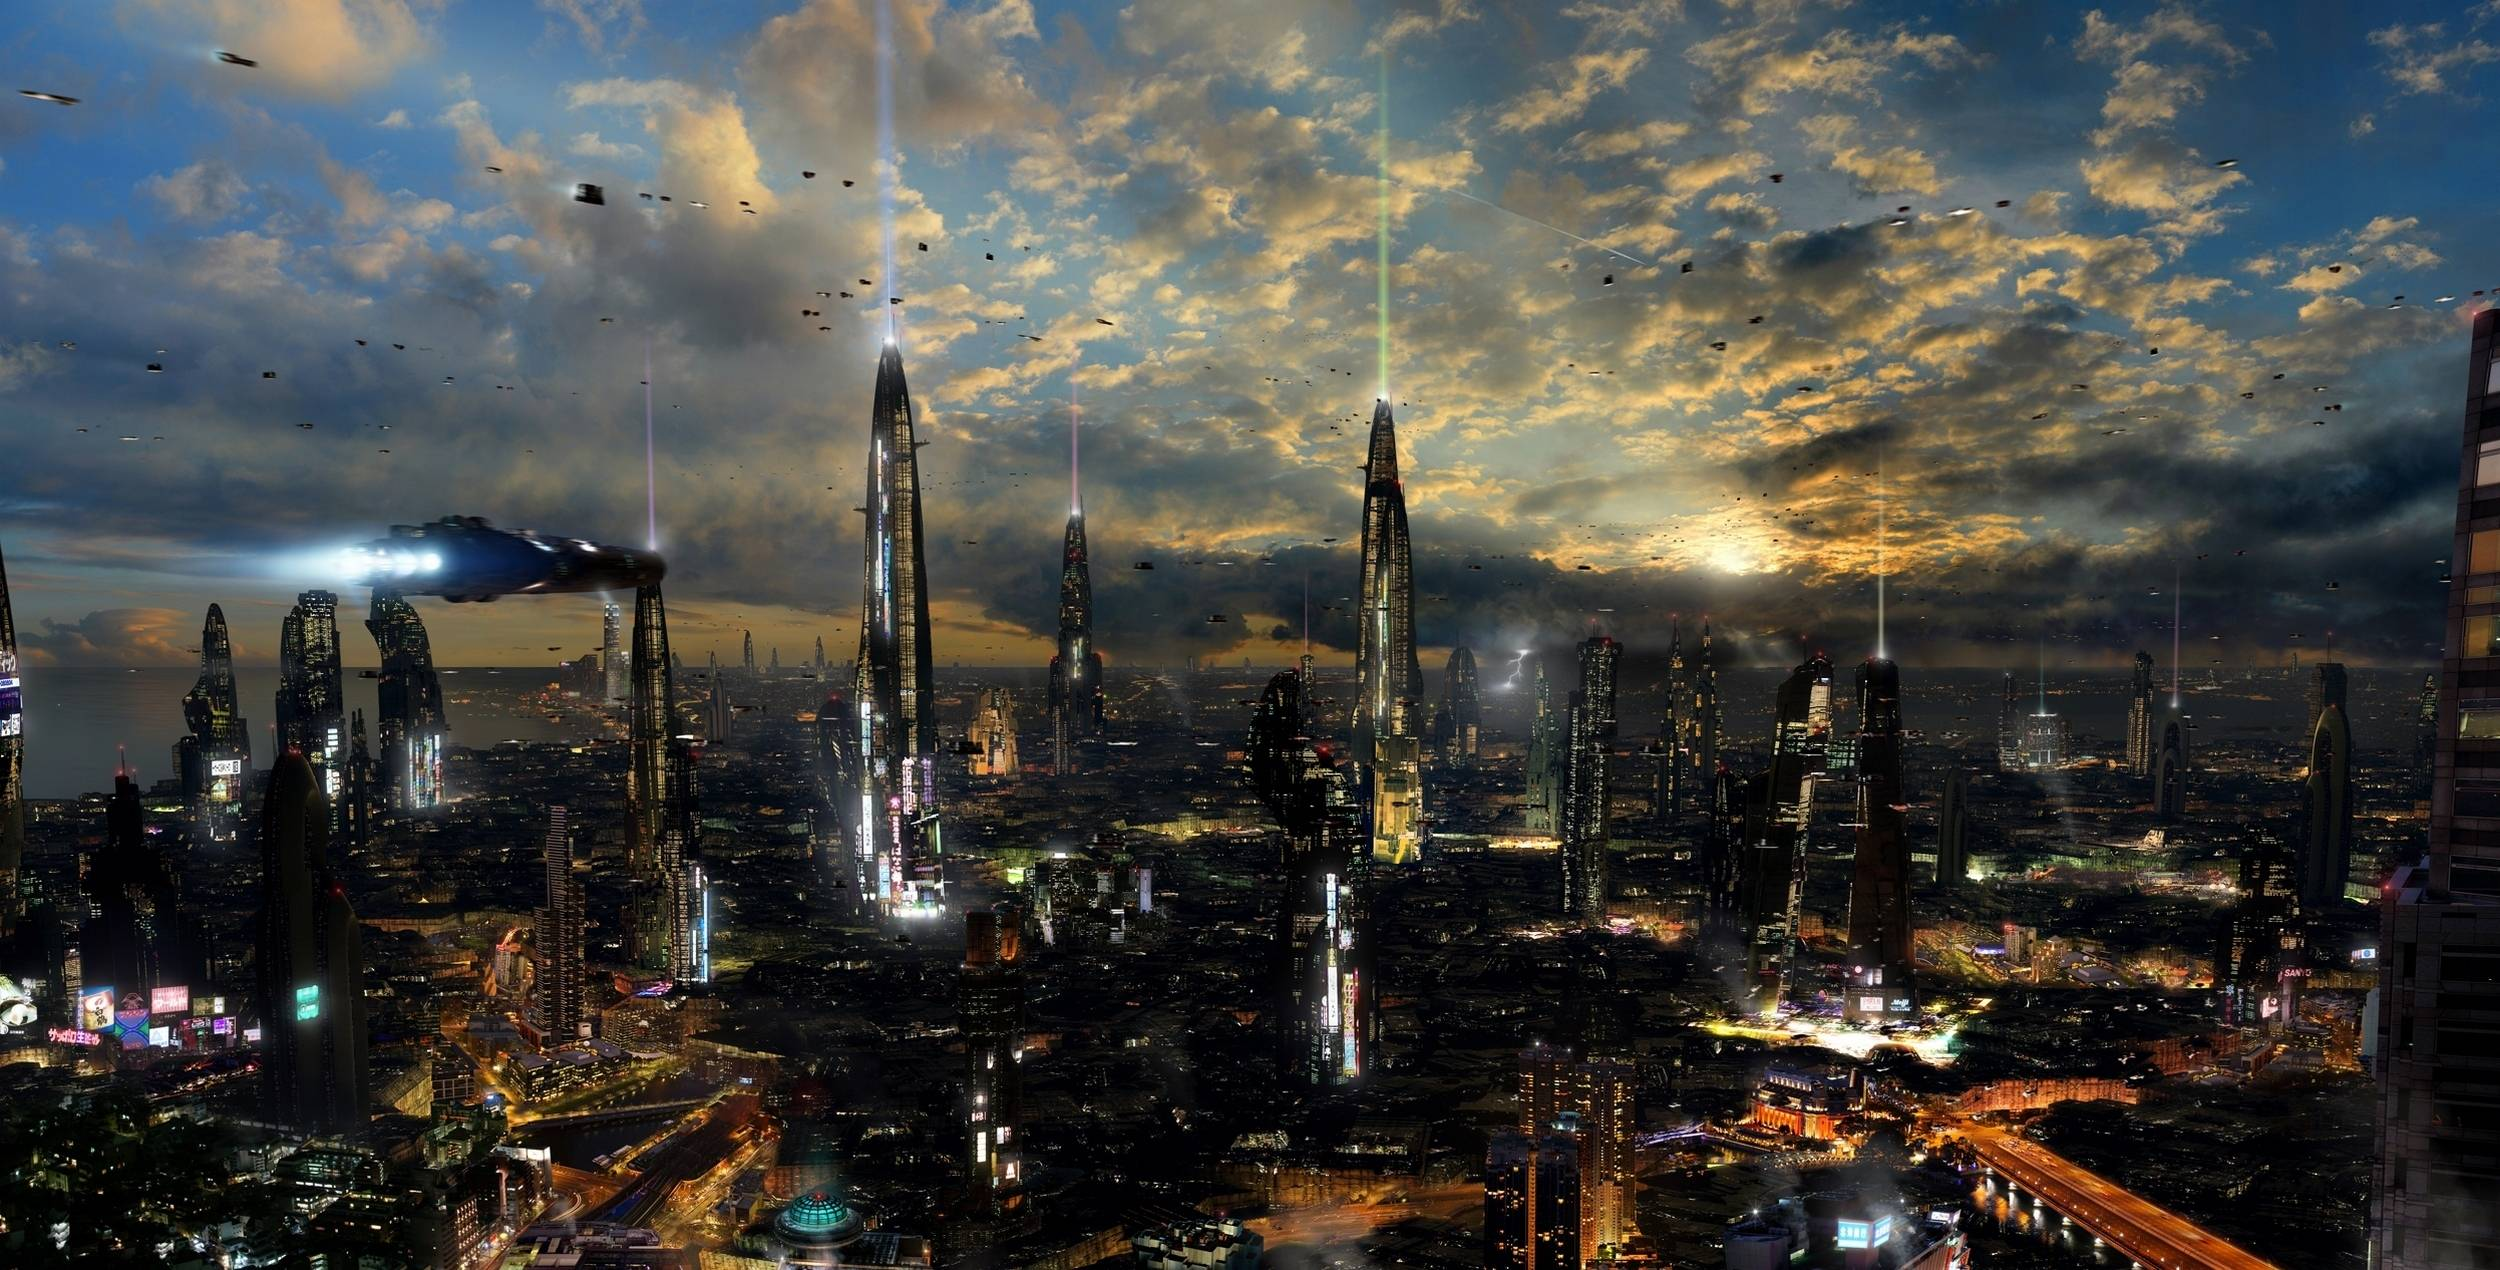 Images of Future City | 2500x1270